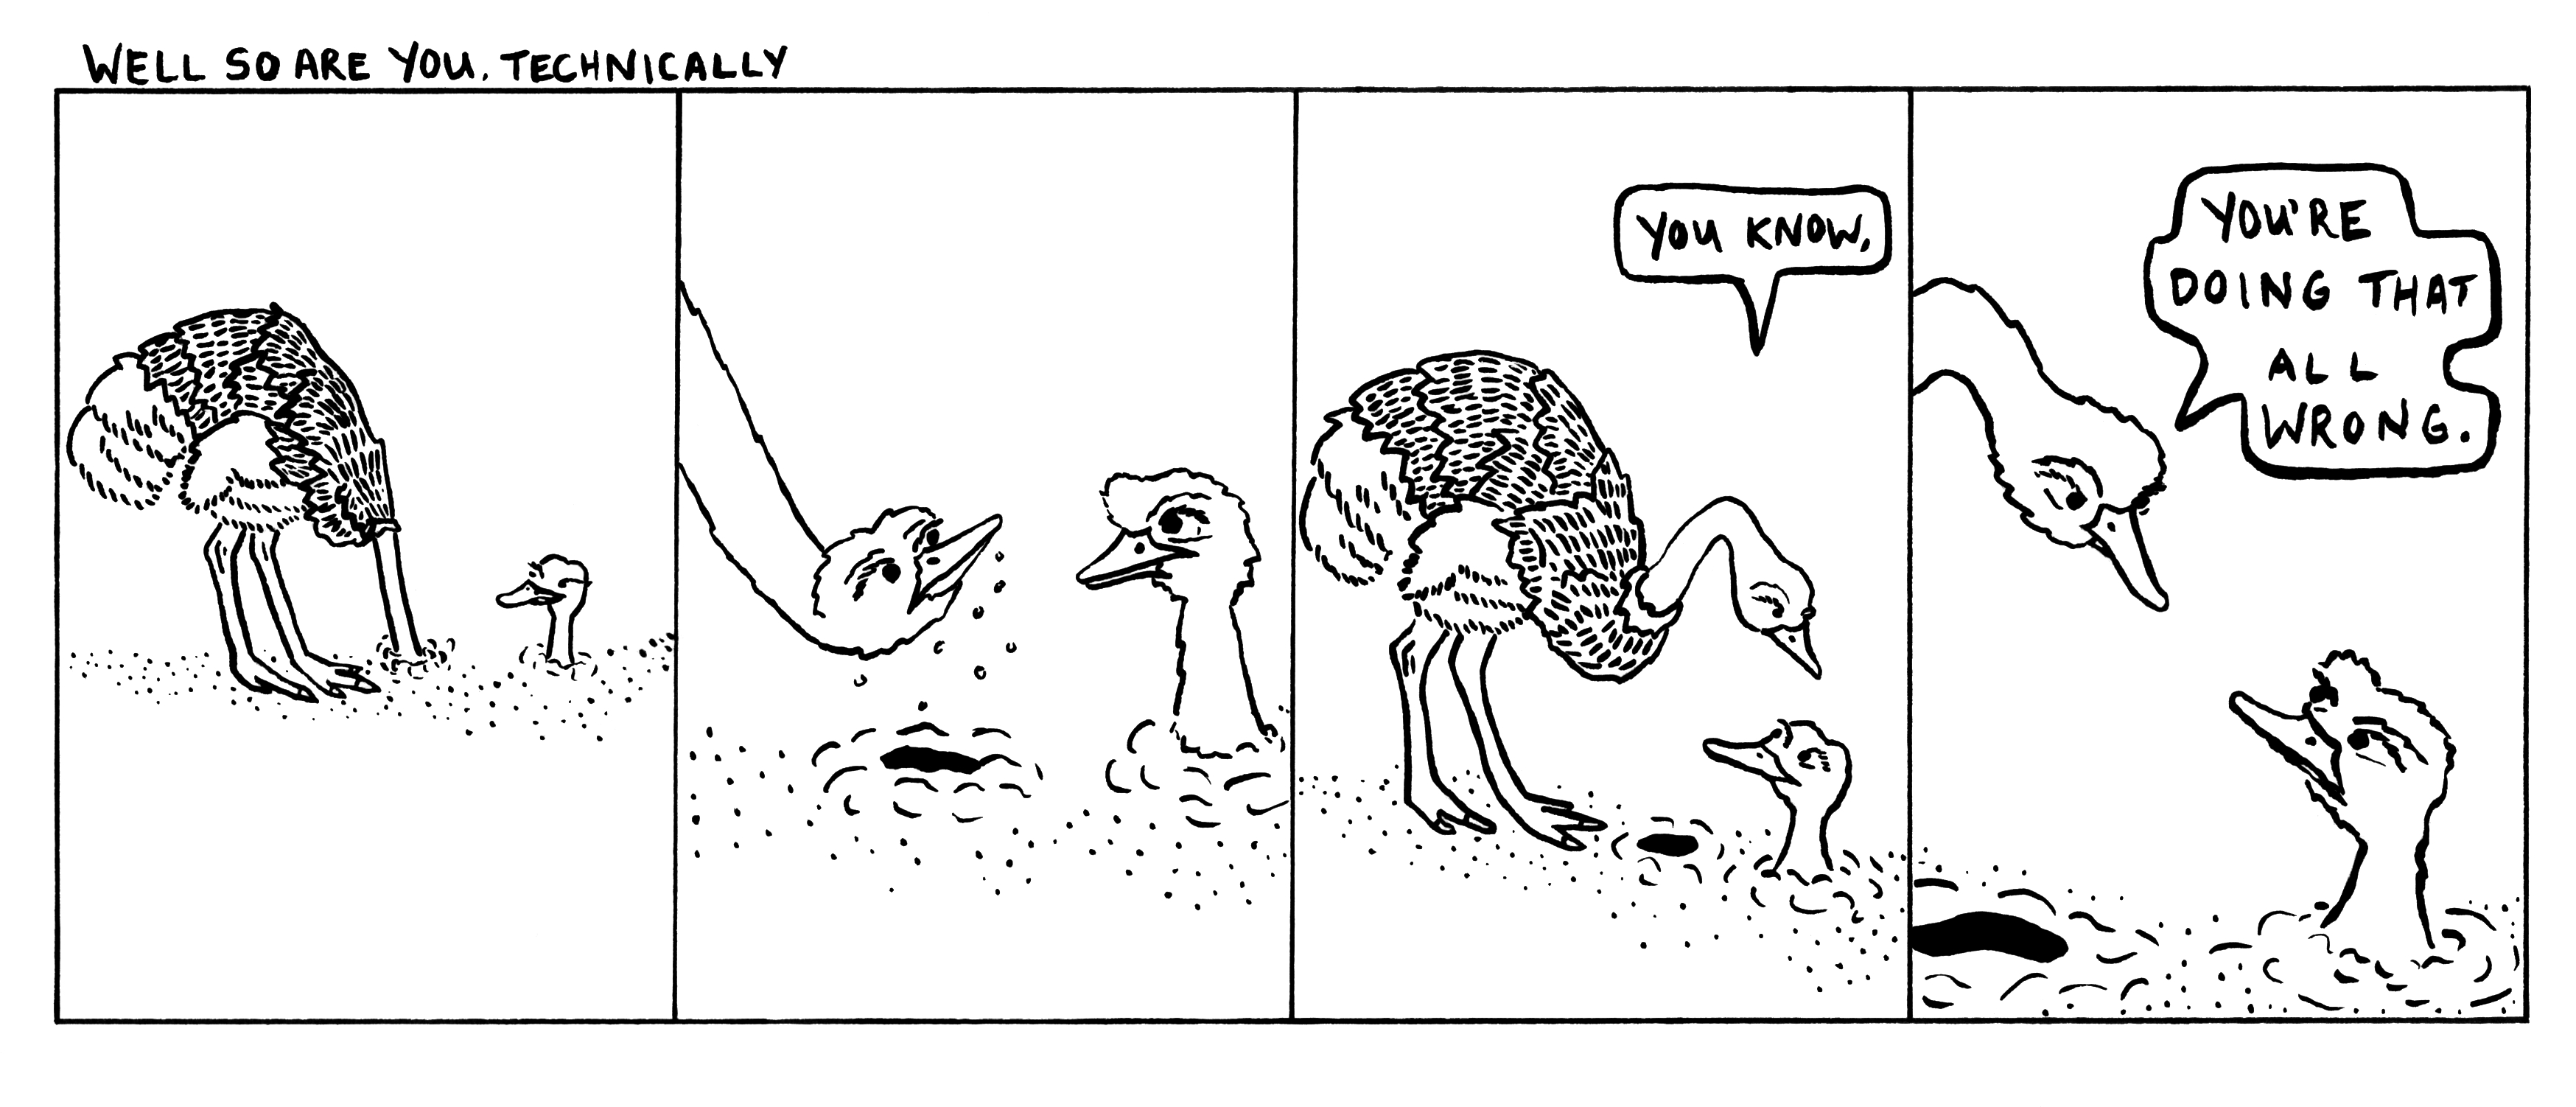 No need to lay any reality about the behavior of ostriches on me, thanks